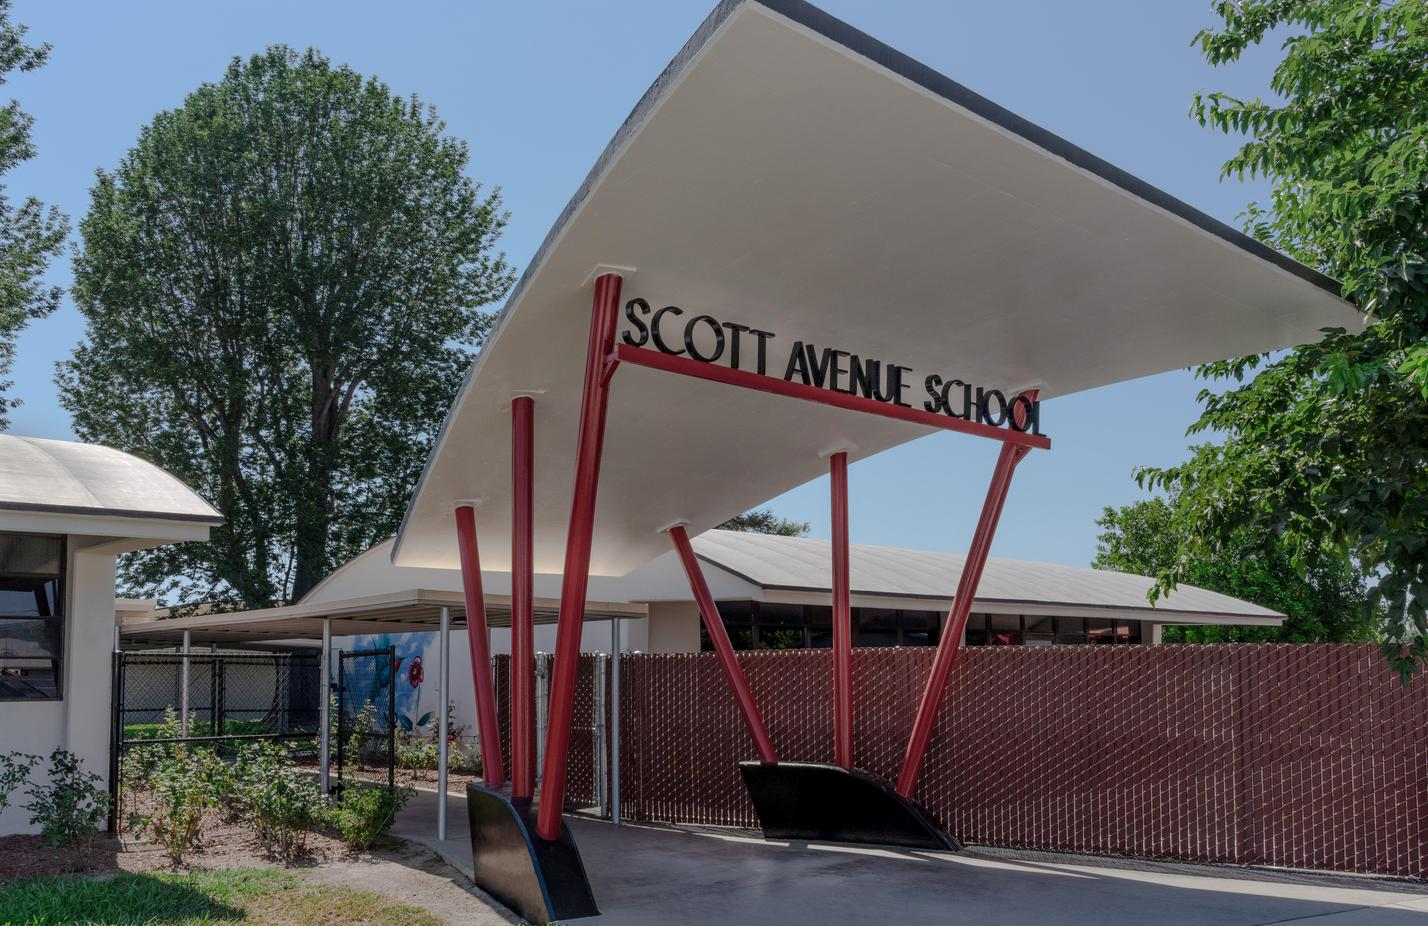 Scott Avenue Elementary School